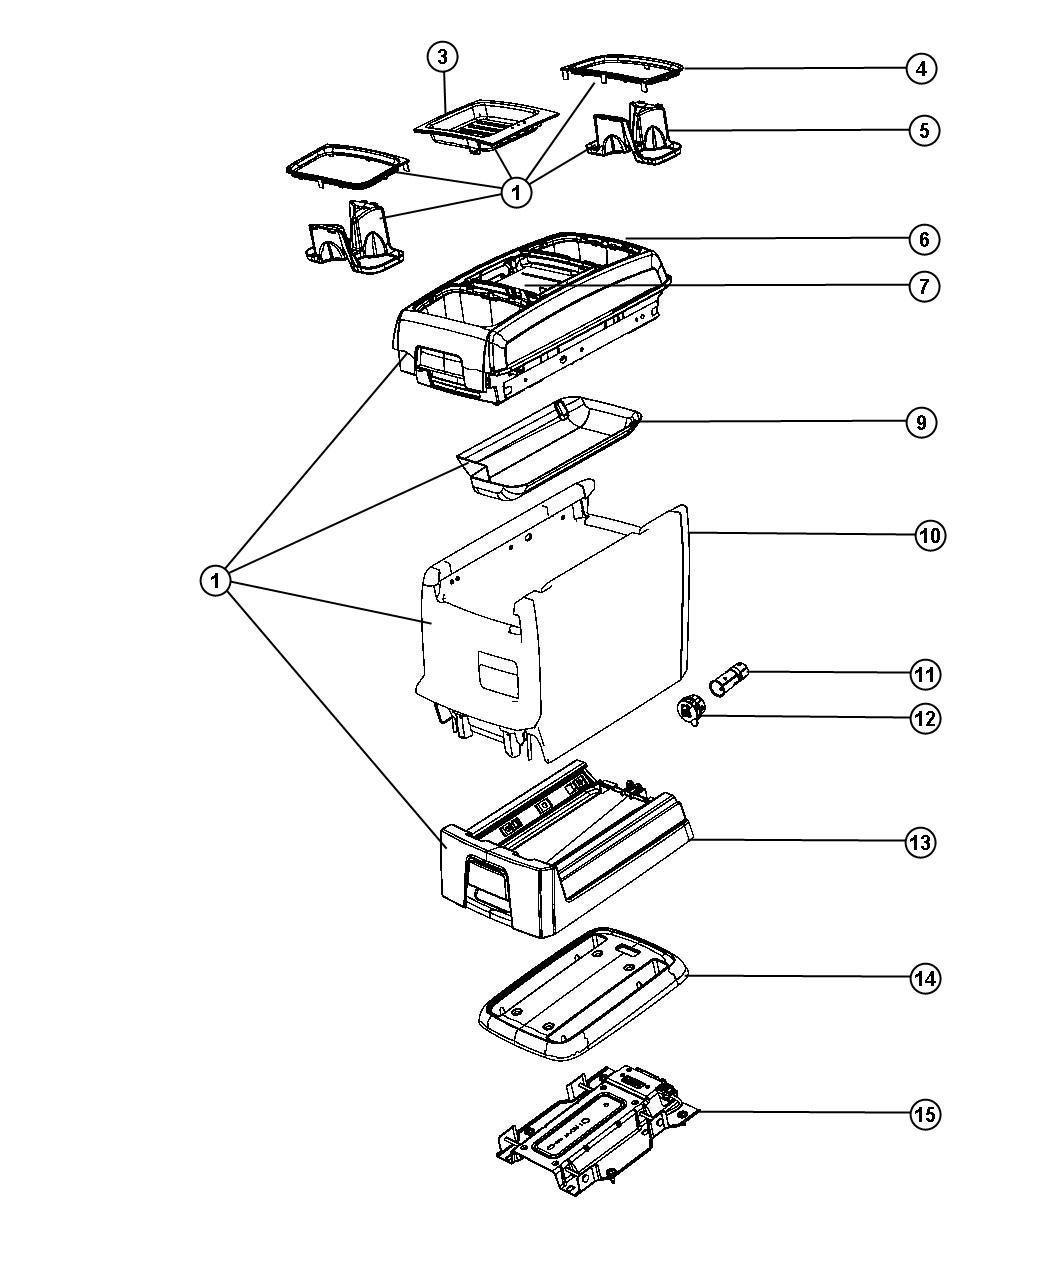 Service manual [1992 Chrysler Town Country Center Console